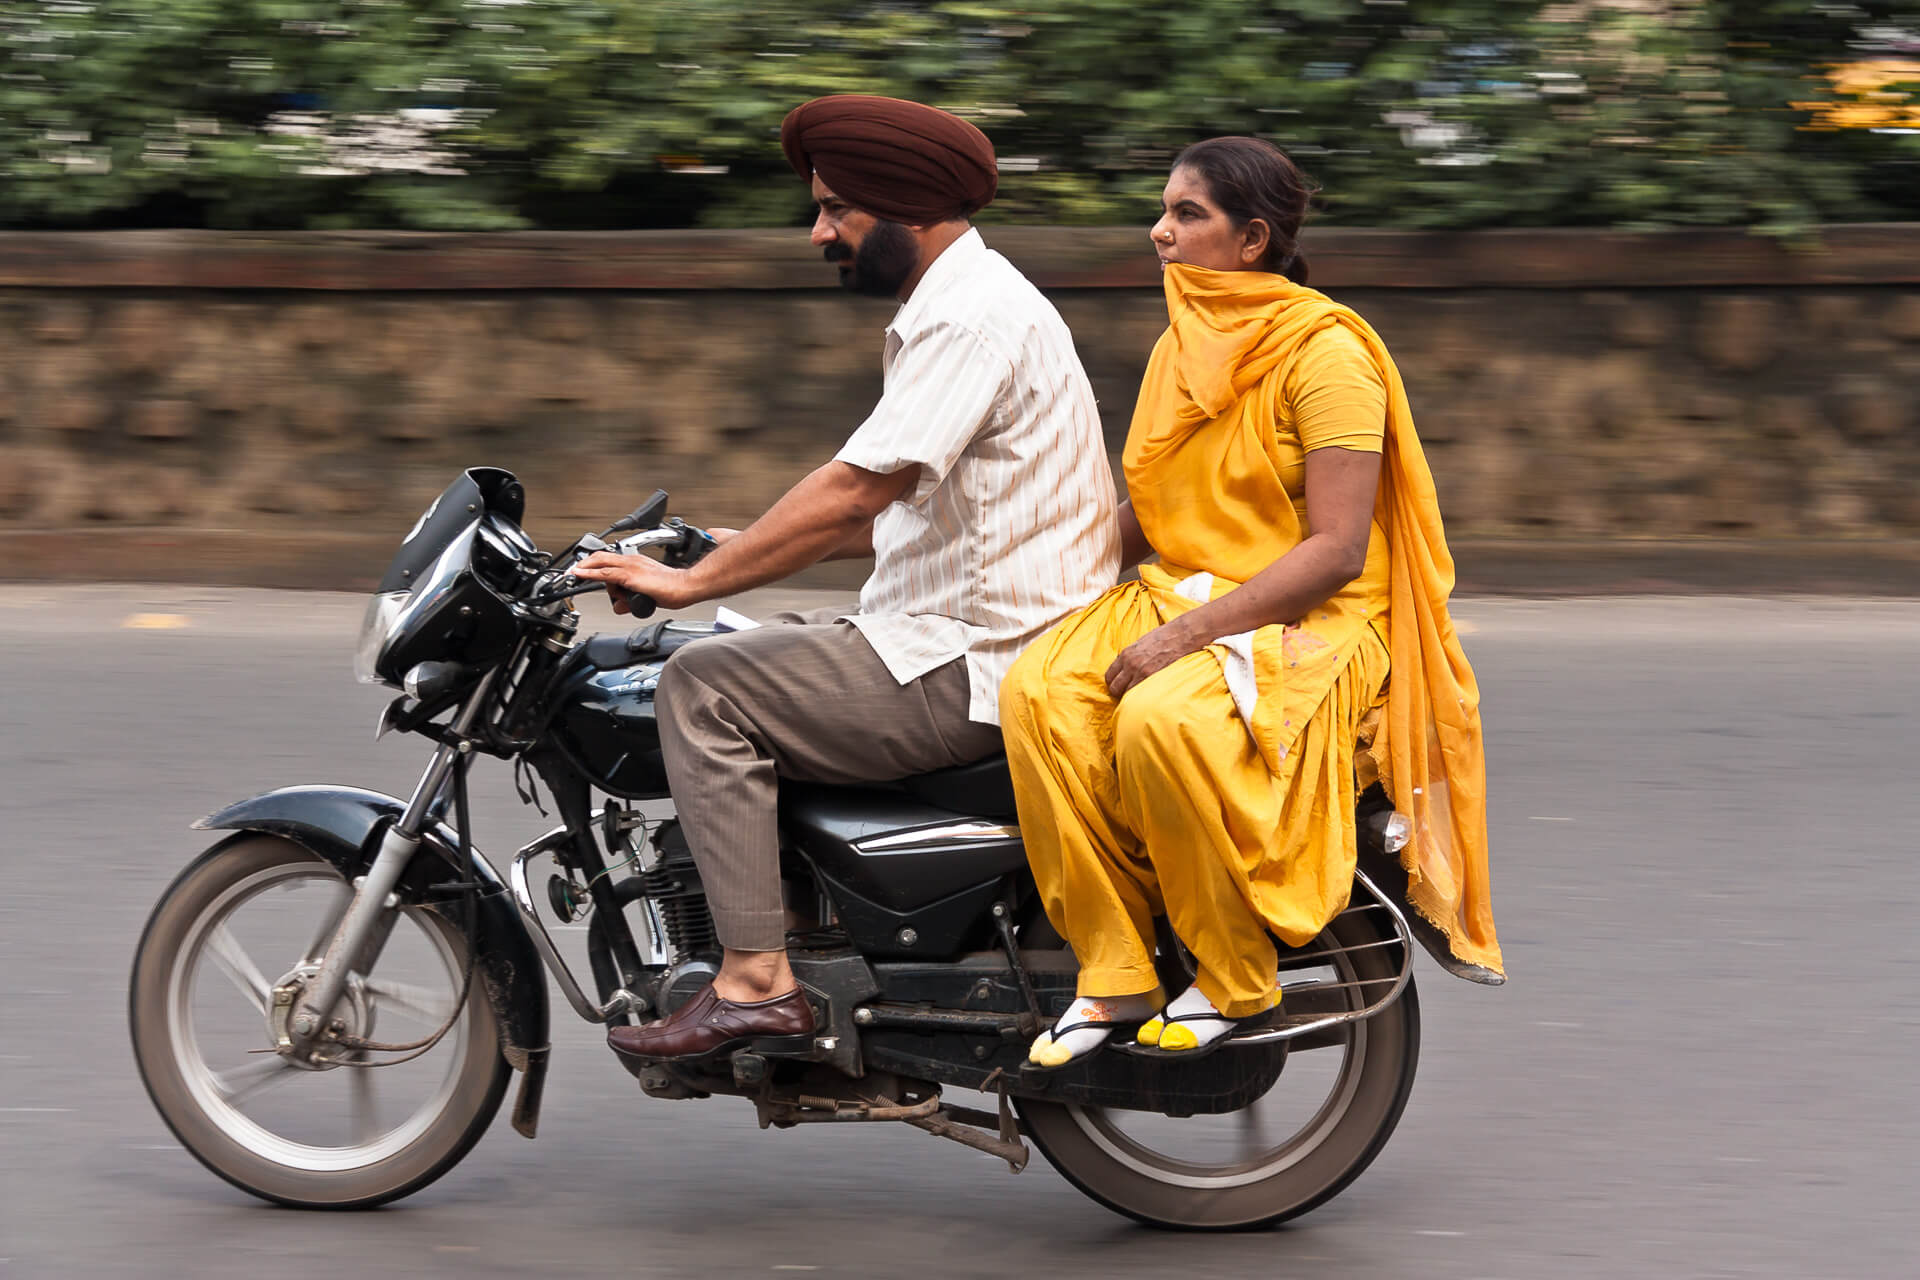 Streetfotografie: Sikh, Wife and Motorcycle